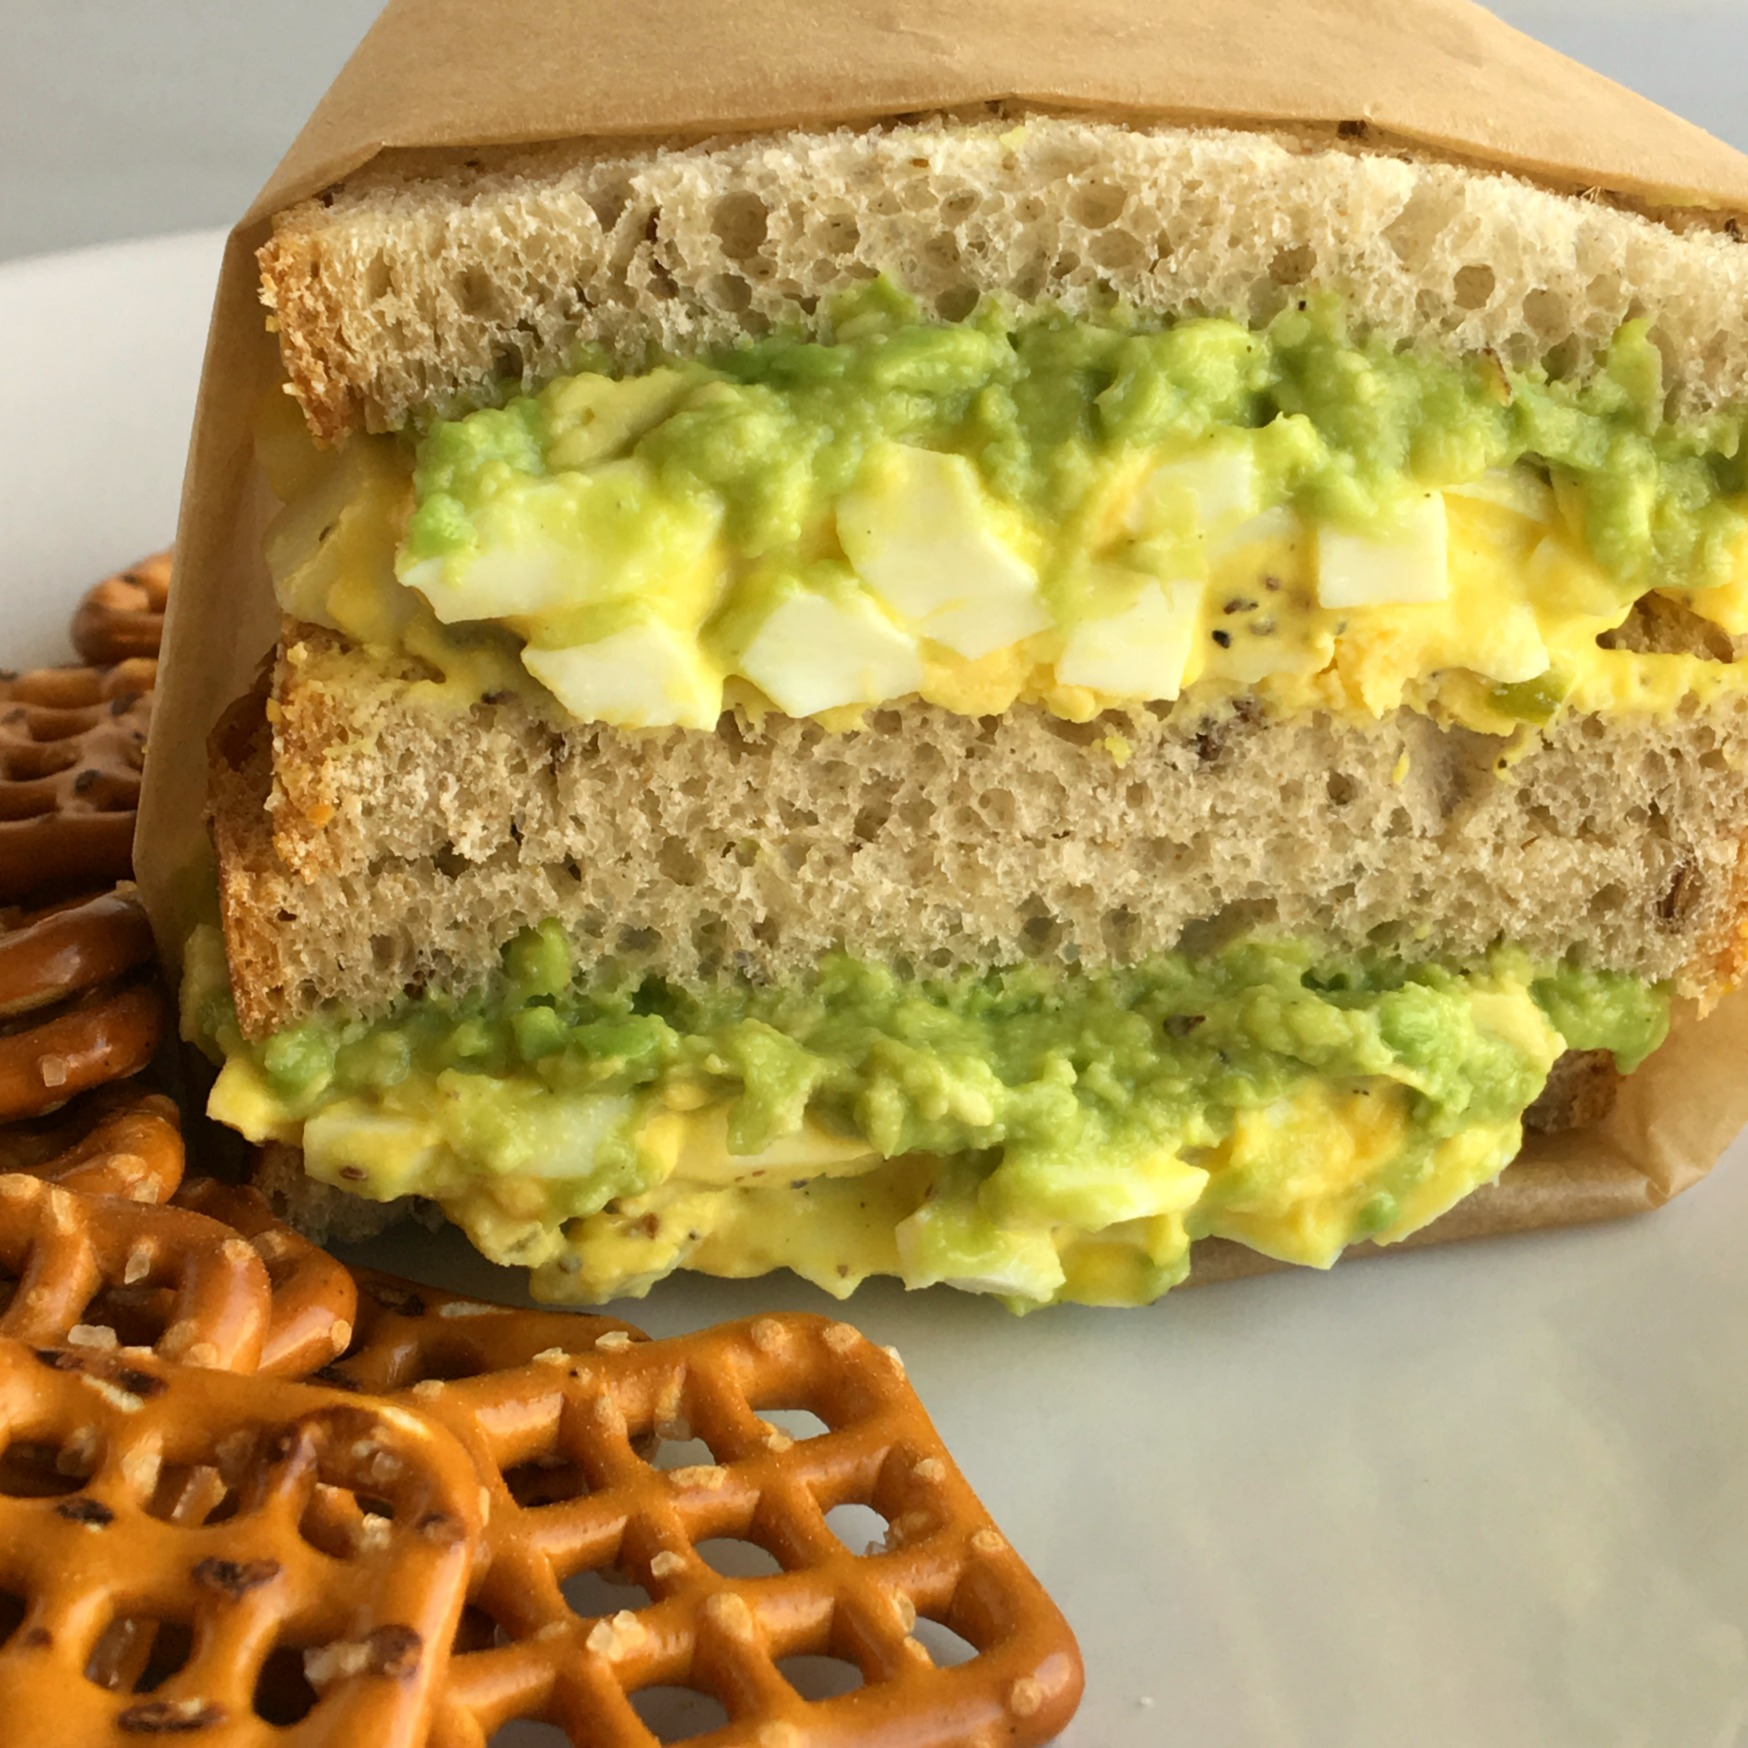 Egg Salad, Avocado Toast, Not Your Mama's Egg Salad Sandwich - Krazy Kitchen Mom